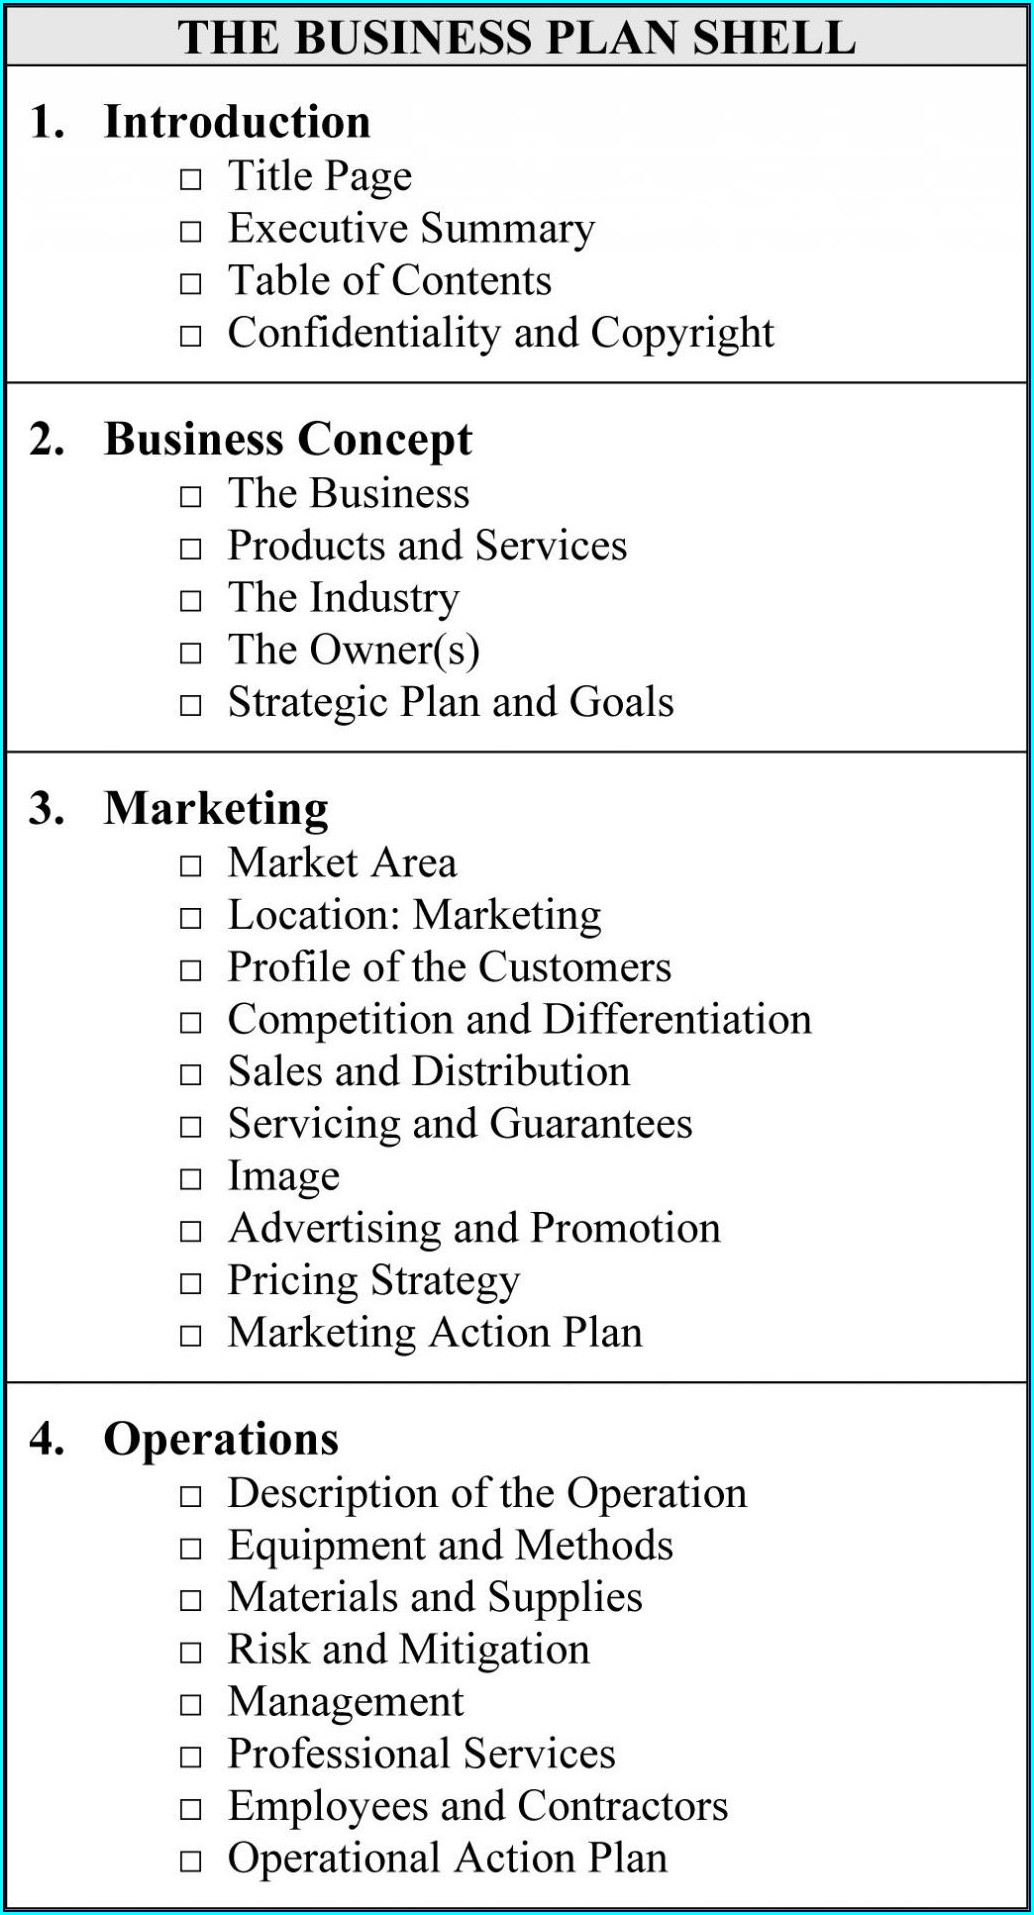 Real Estate Development Business Plan Template Free